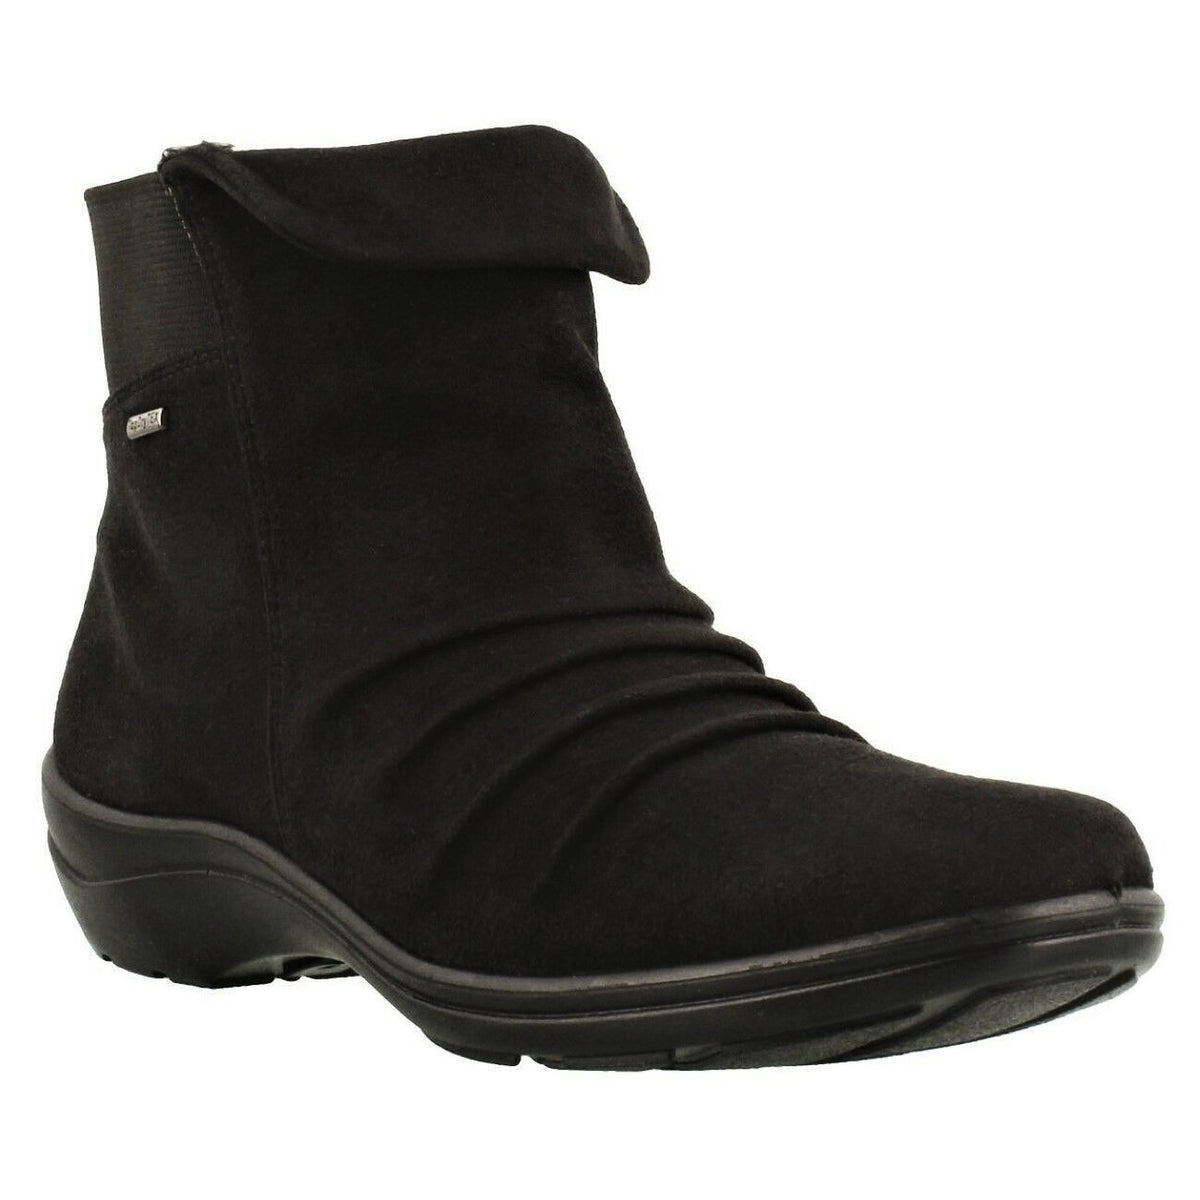 Romika, Cassie 48, Textile Upper Boot, Waterproof, Black Boots Romika Black 36